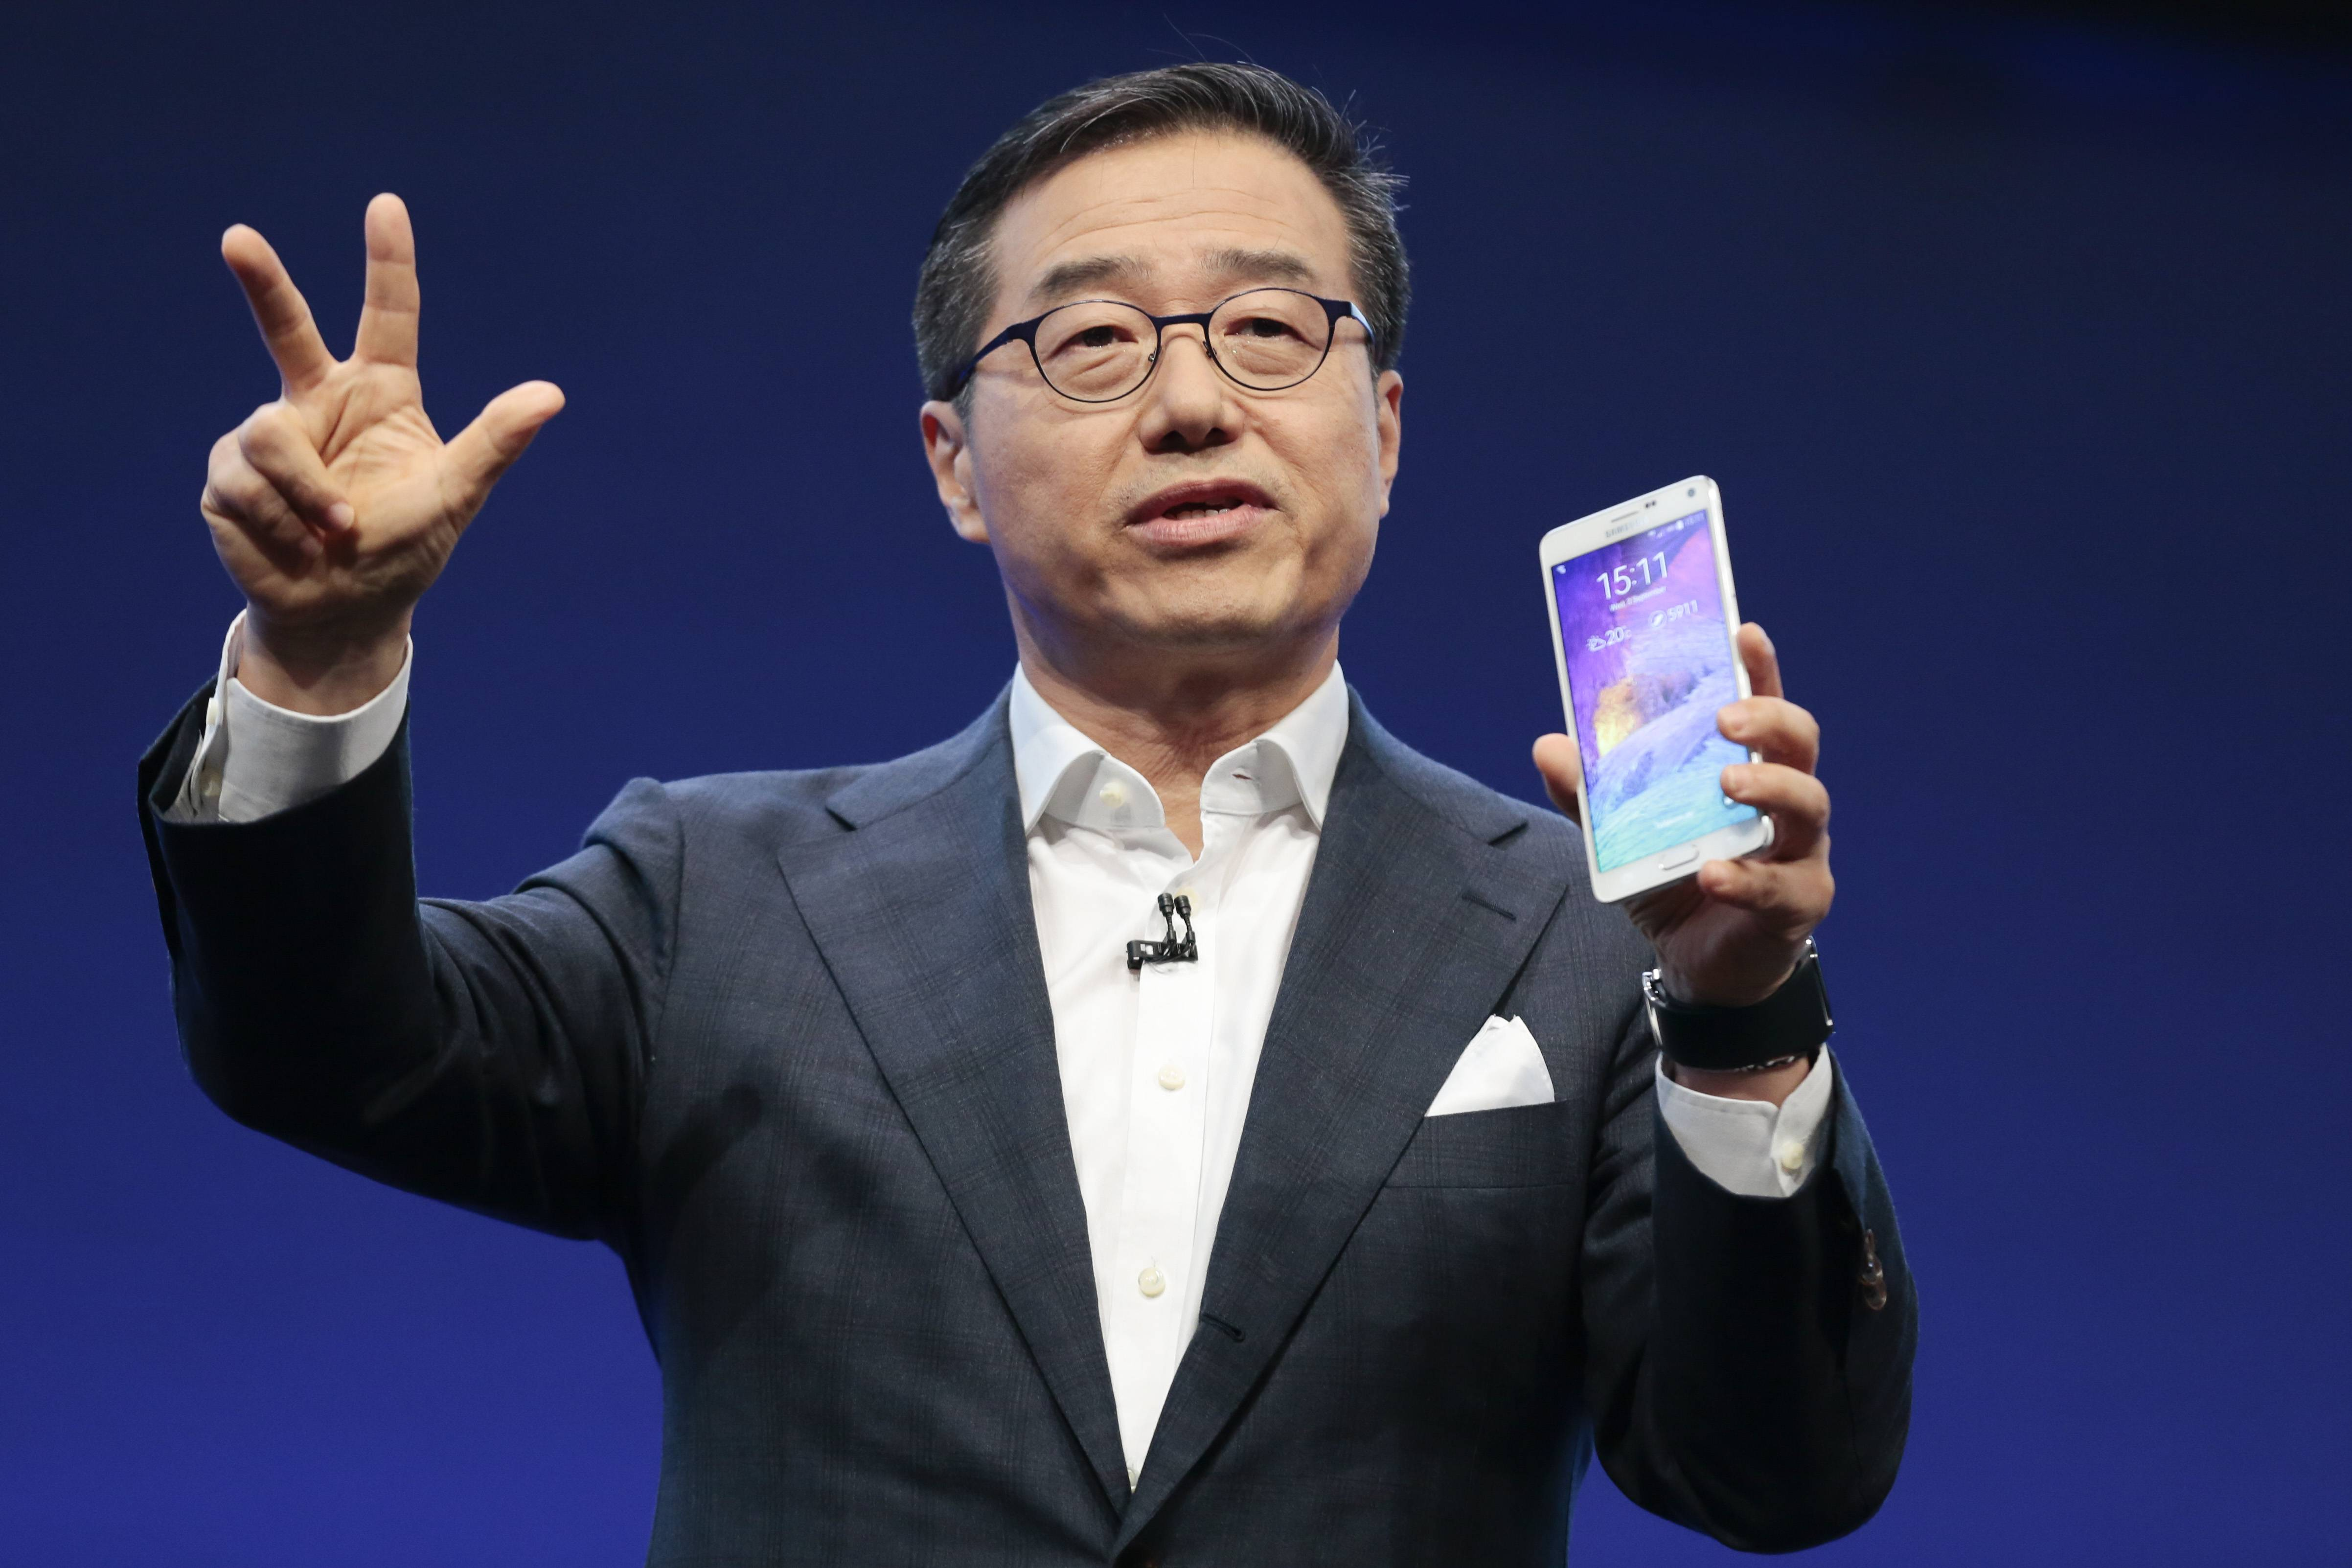 DJ Lee Executive Vice President of Samsung presents a Samsung Galaxy Note 4 during his keynote at an unpacked event of Samsung ahead of the consumer electronic fair IFA in Berlin, Wednesday.